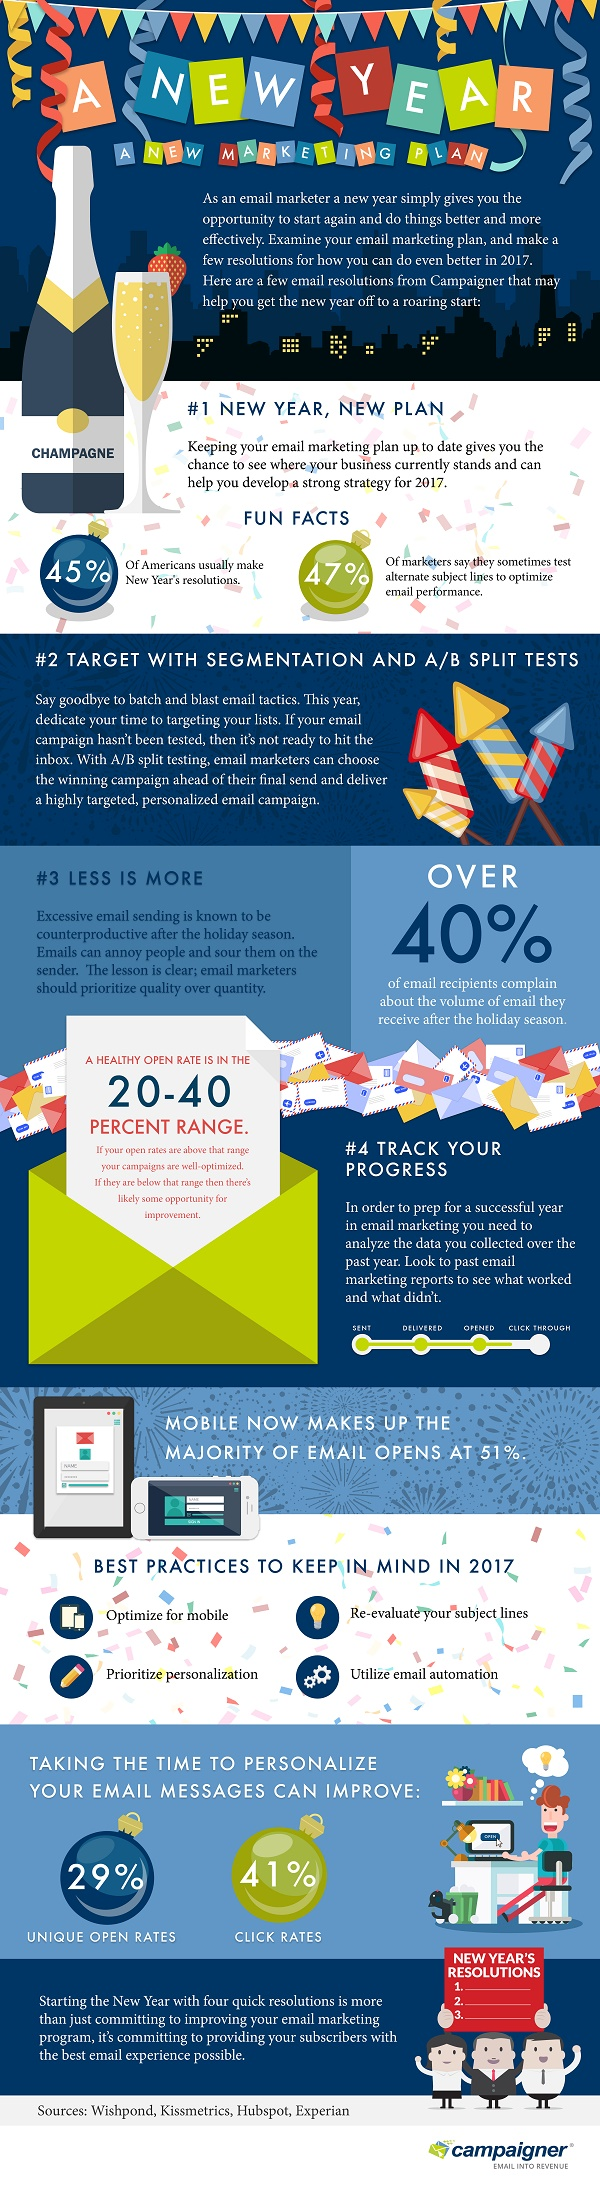 Campaigner-Email-Marketing-New-Year-Resolution_FINAL_121916-002